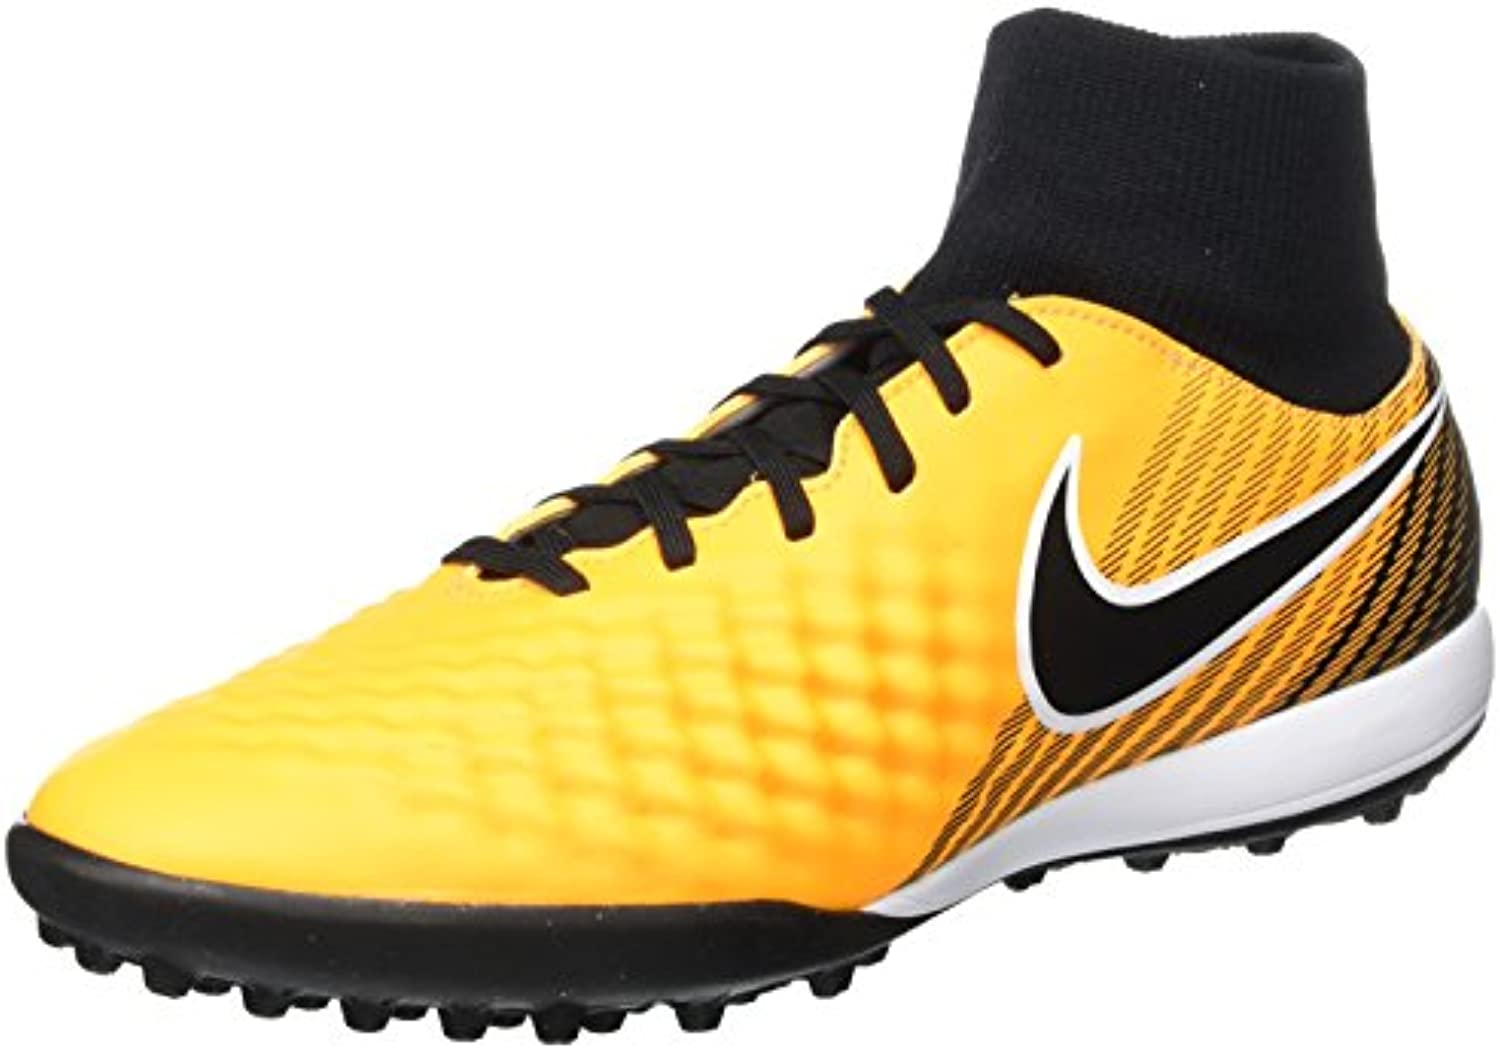 Nike Magistax Onda II Dynamic Fit TF, Zapatillas de Fútbol para Hombre, Naranja (Laser Orange/Black-White-Vert...